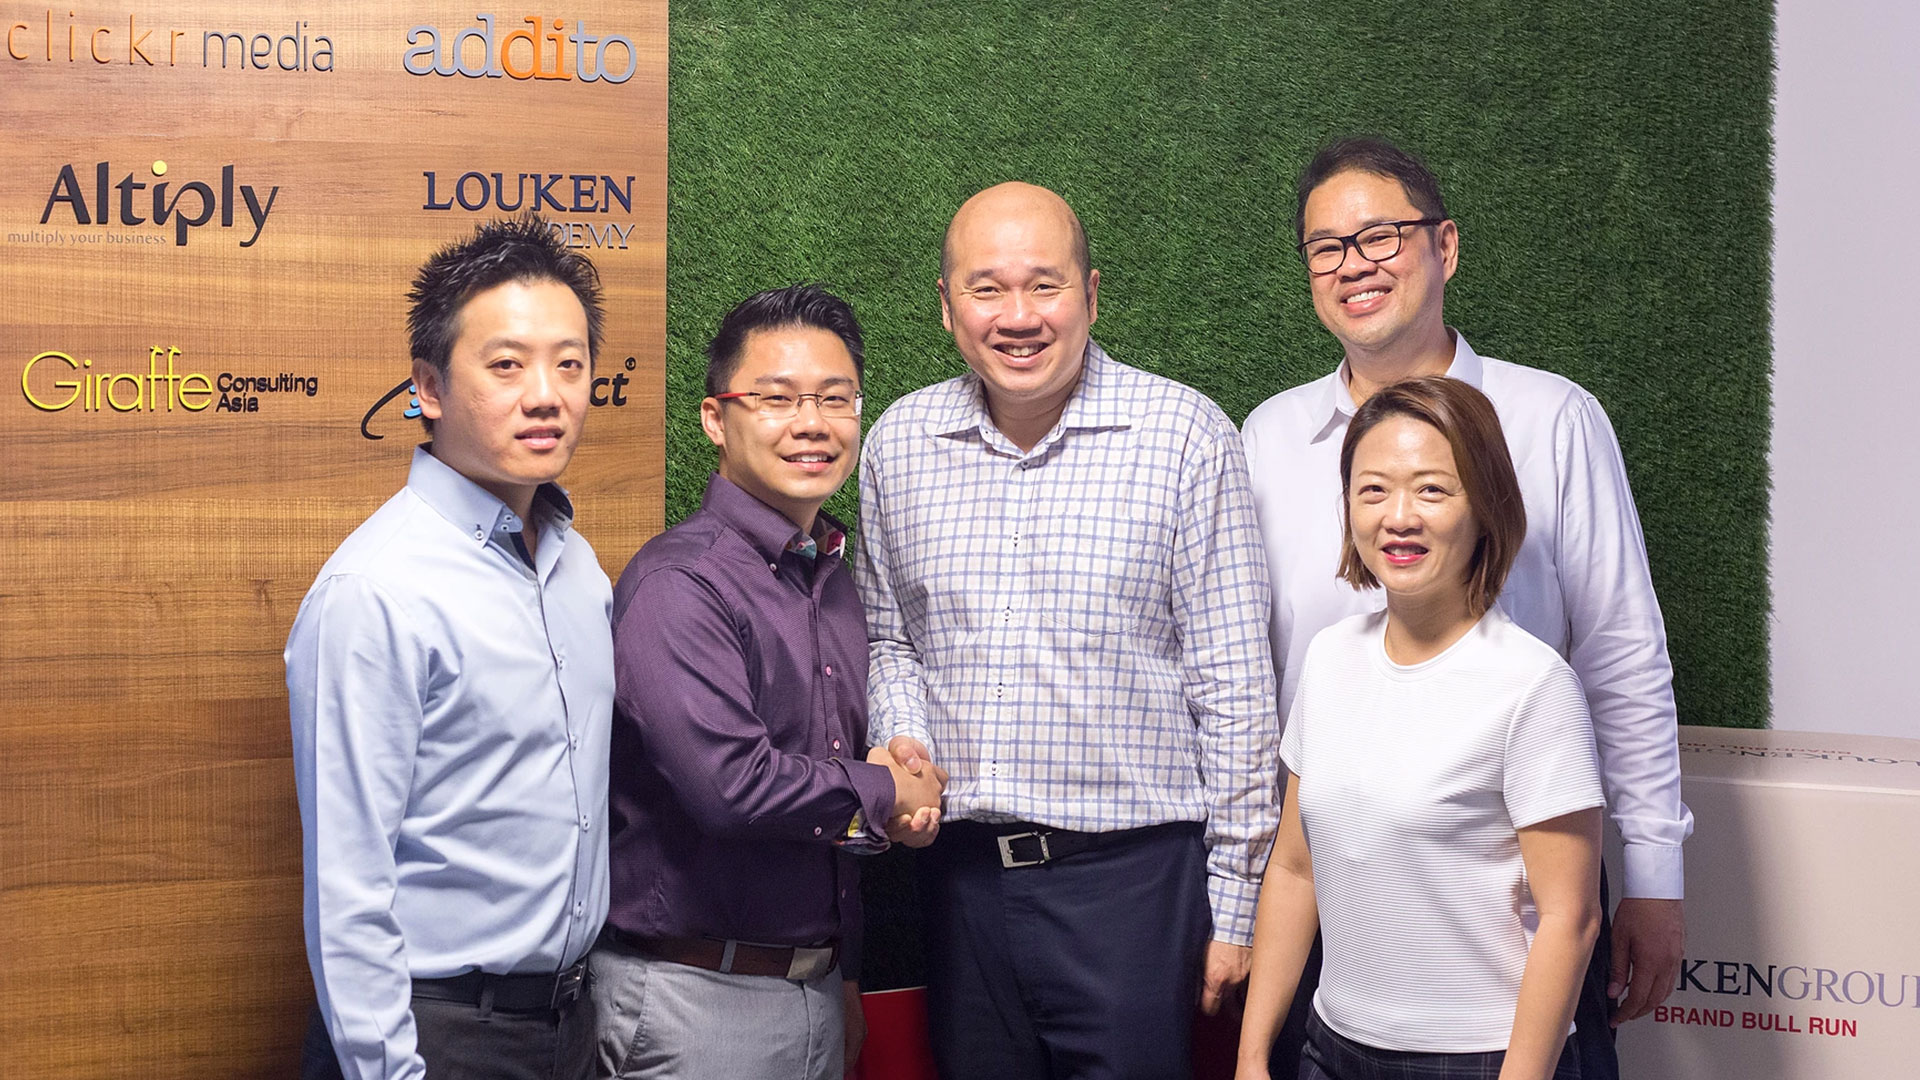 MEDIA RELEASE: Chef At Work announces Brokerage Partnership with ALTIPLY from the Louken Group